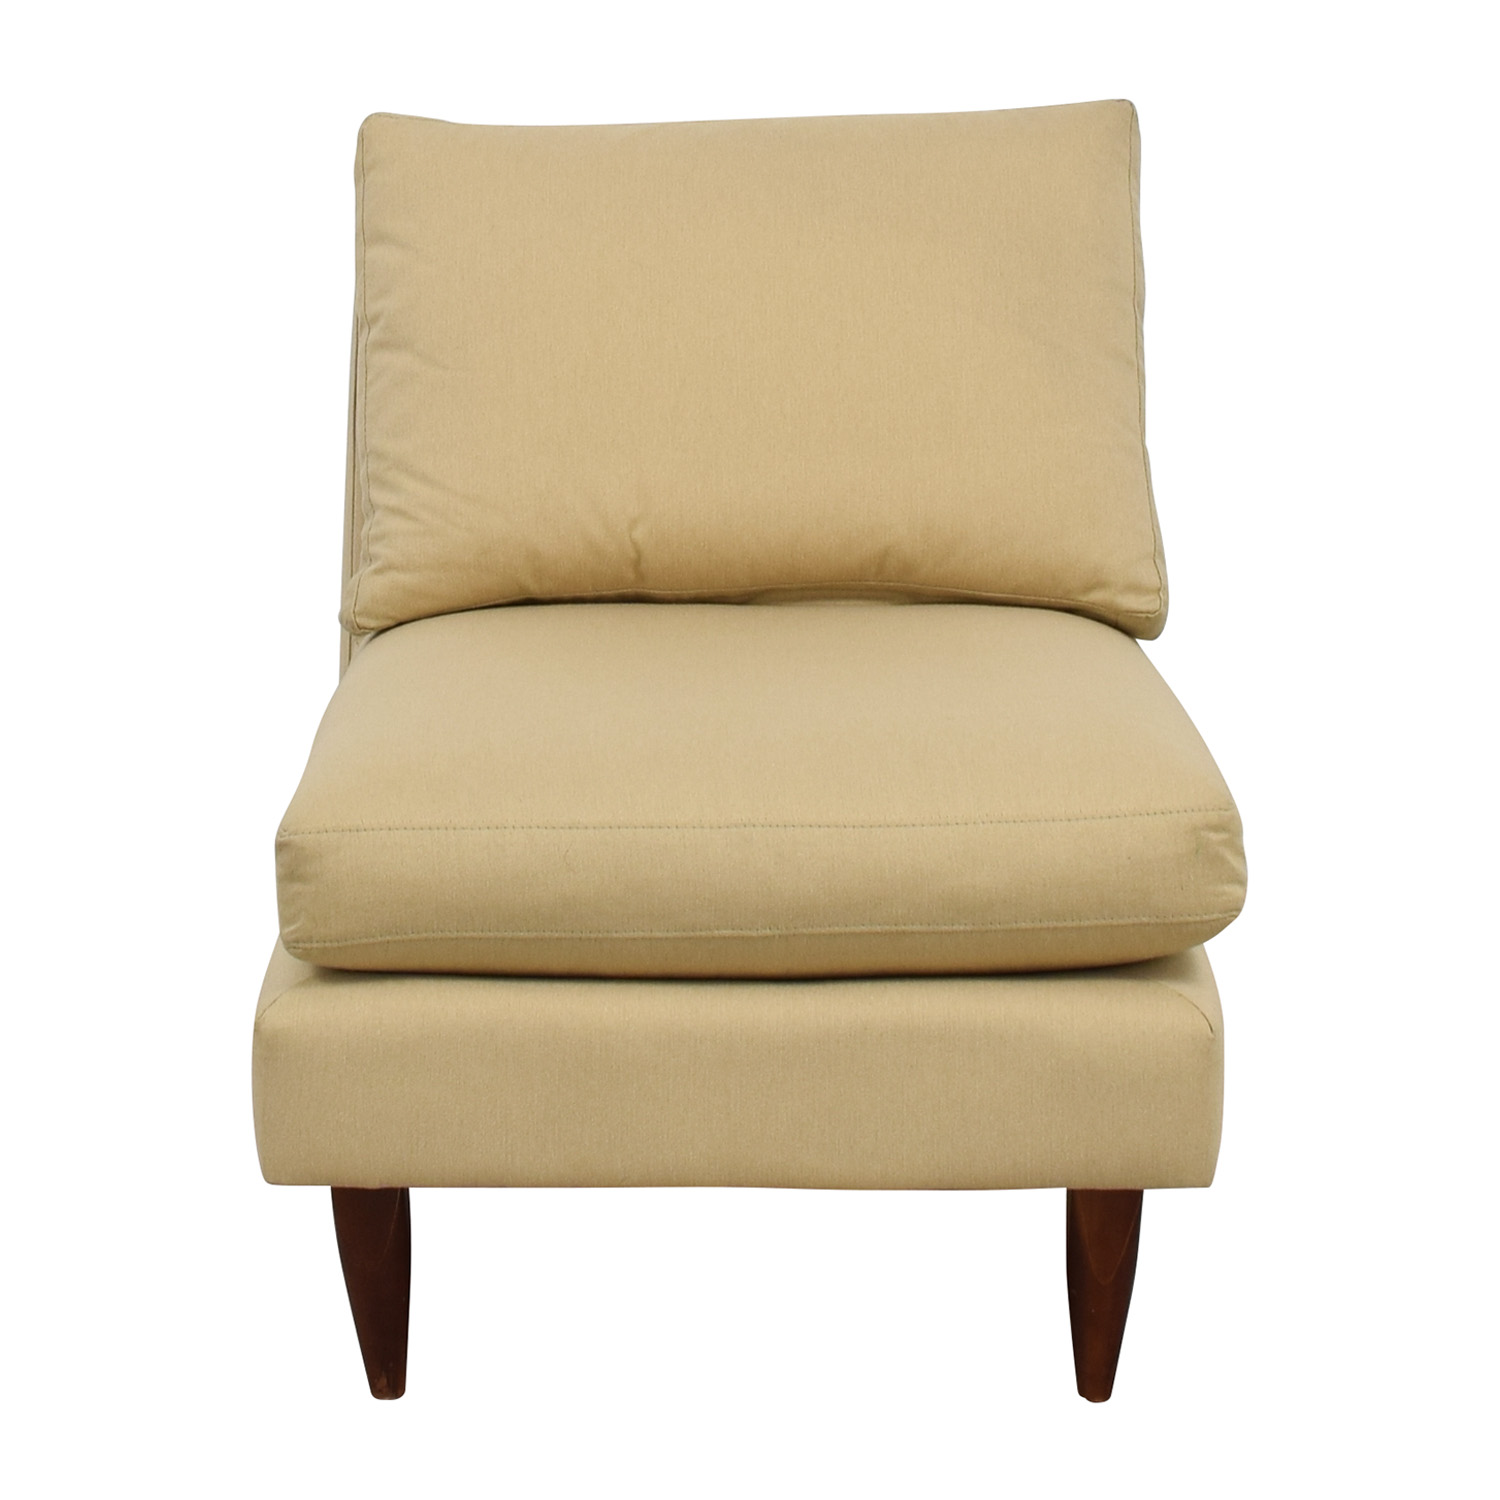 Room & Board Room & Board Beige Slipper Chair price